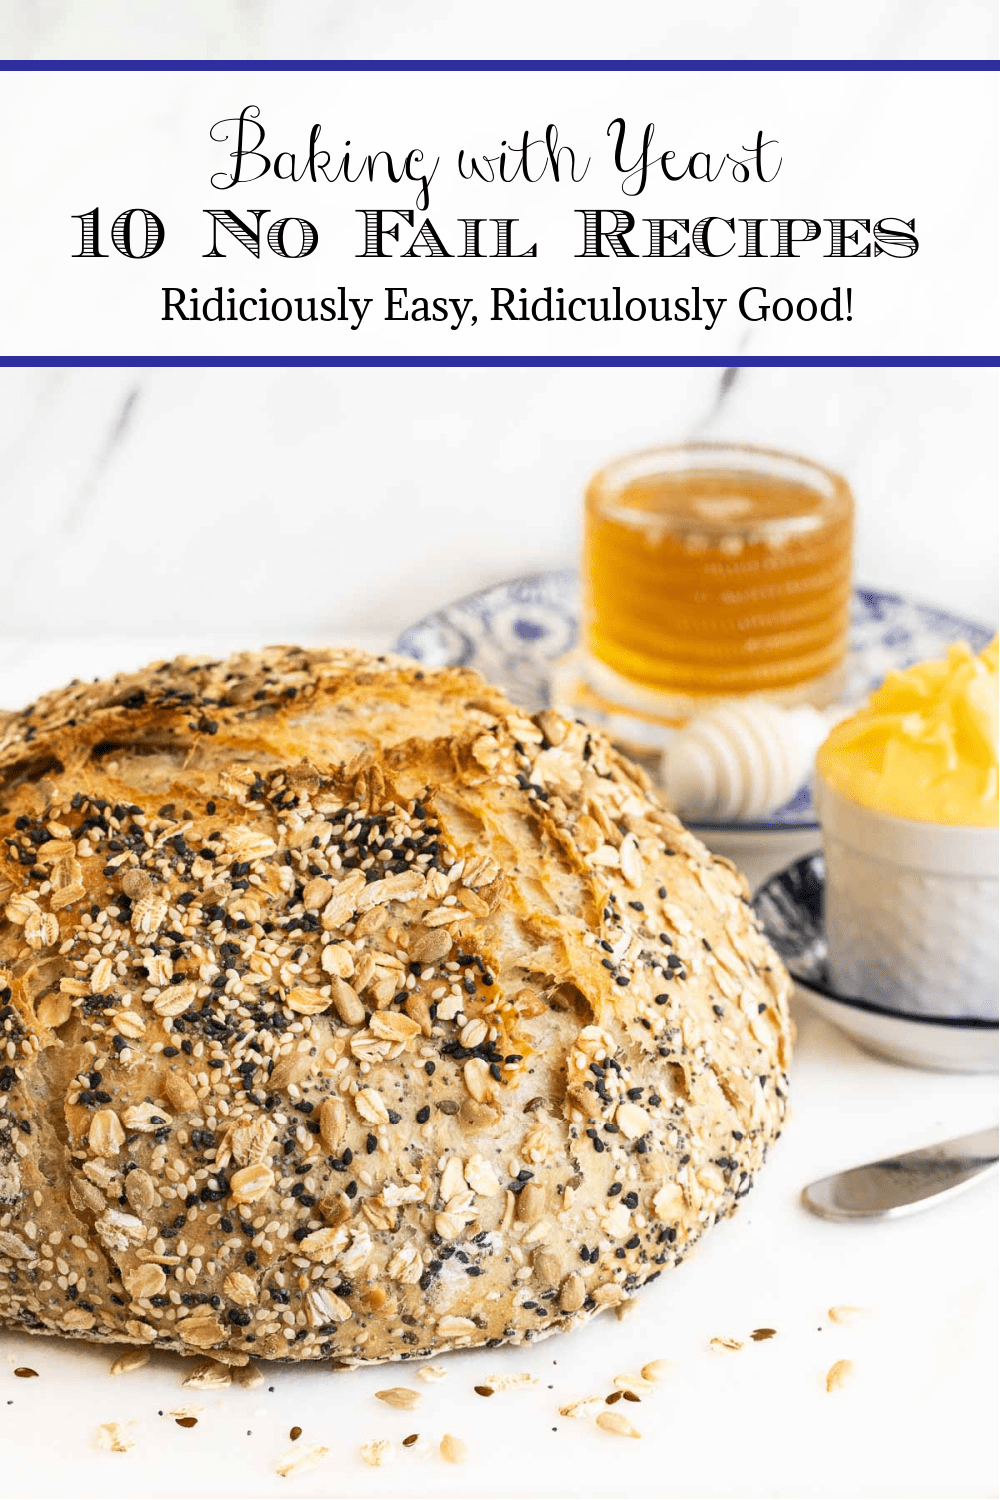 Yeast phobia? Easy recipes for baking success!